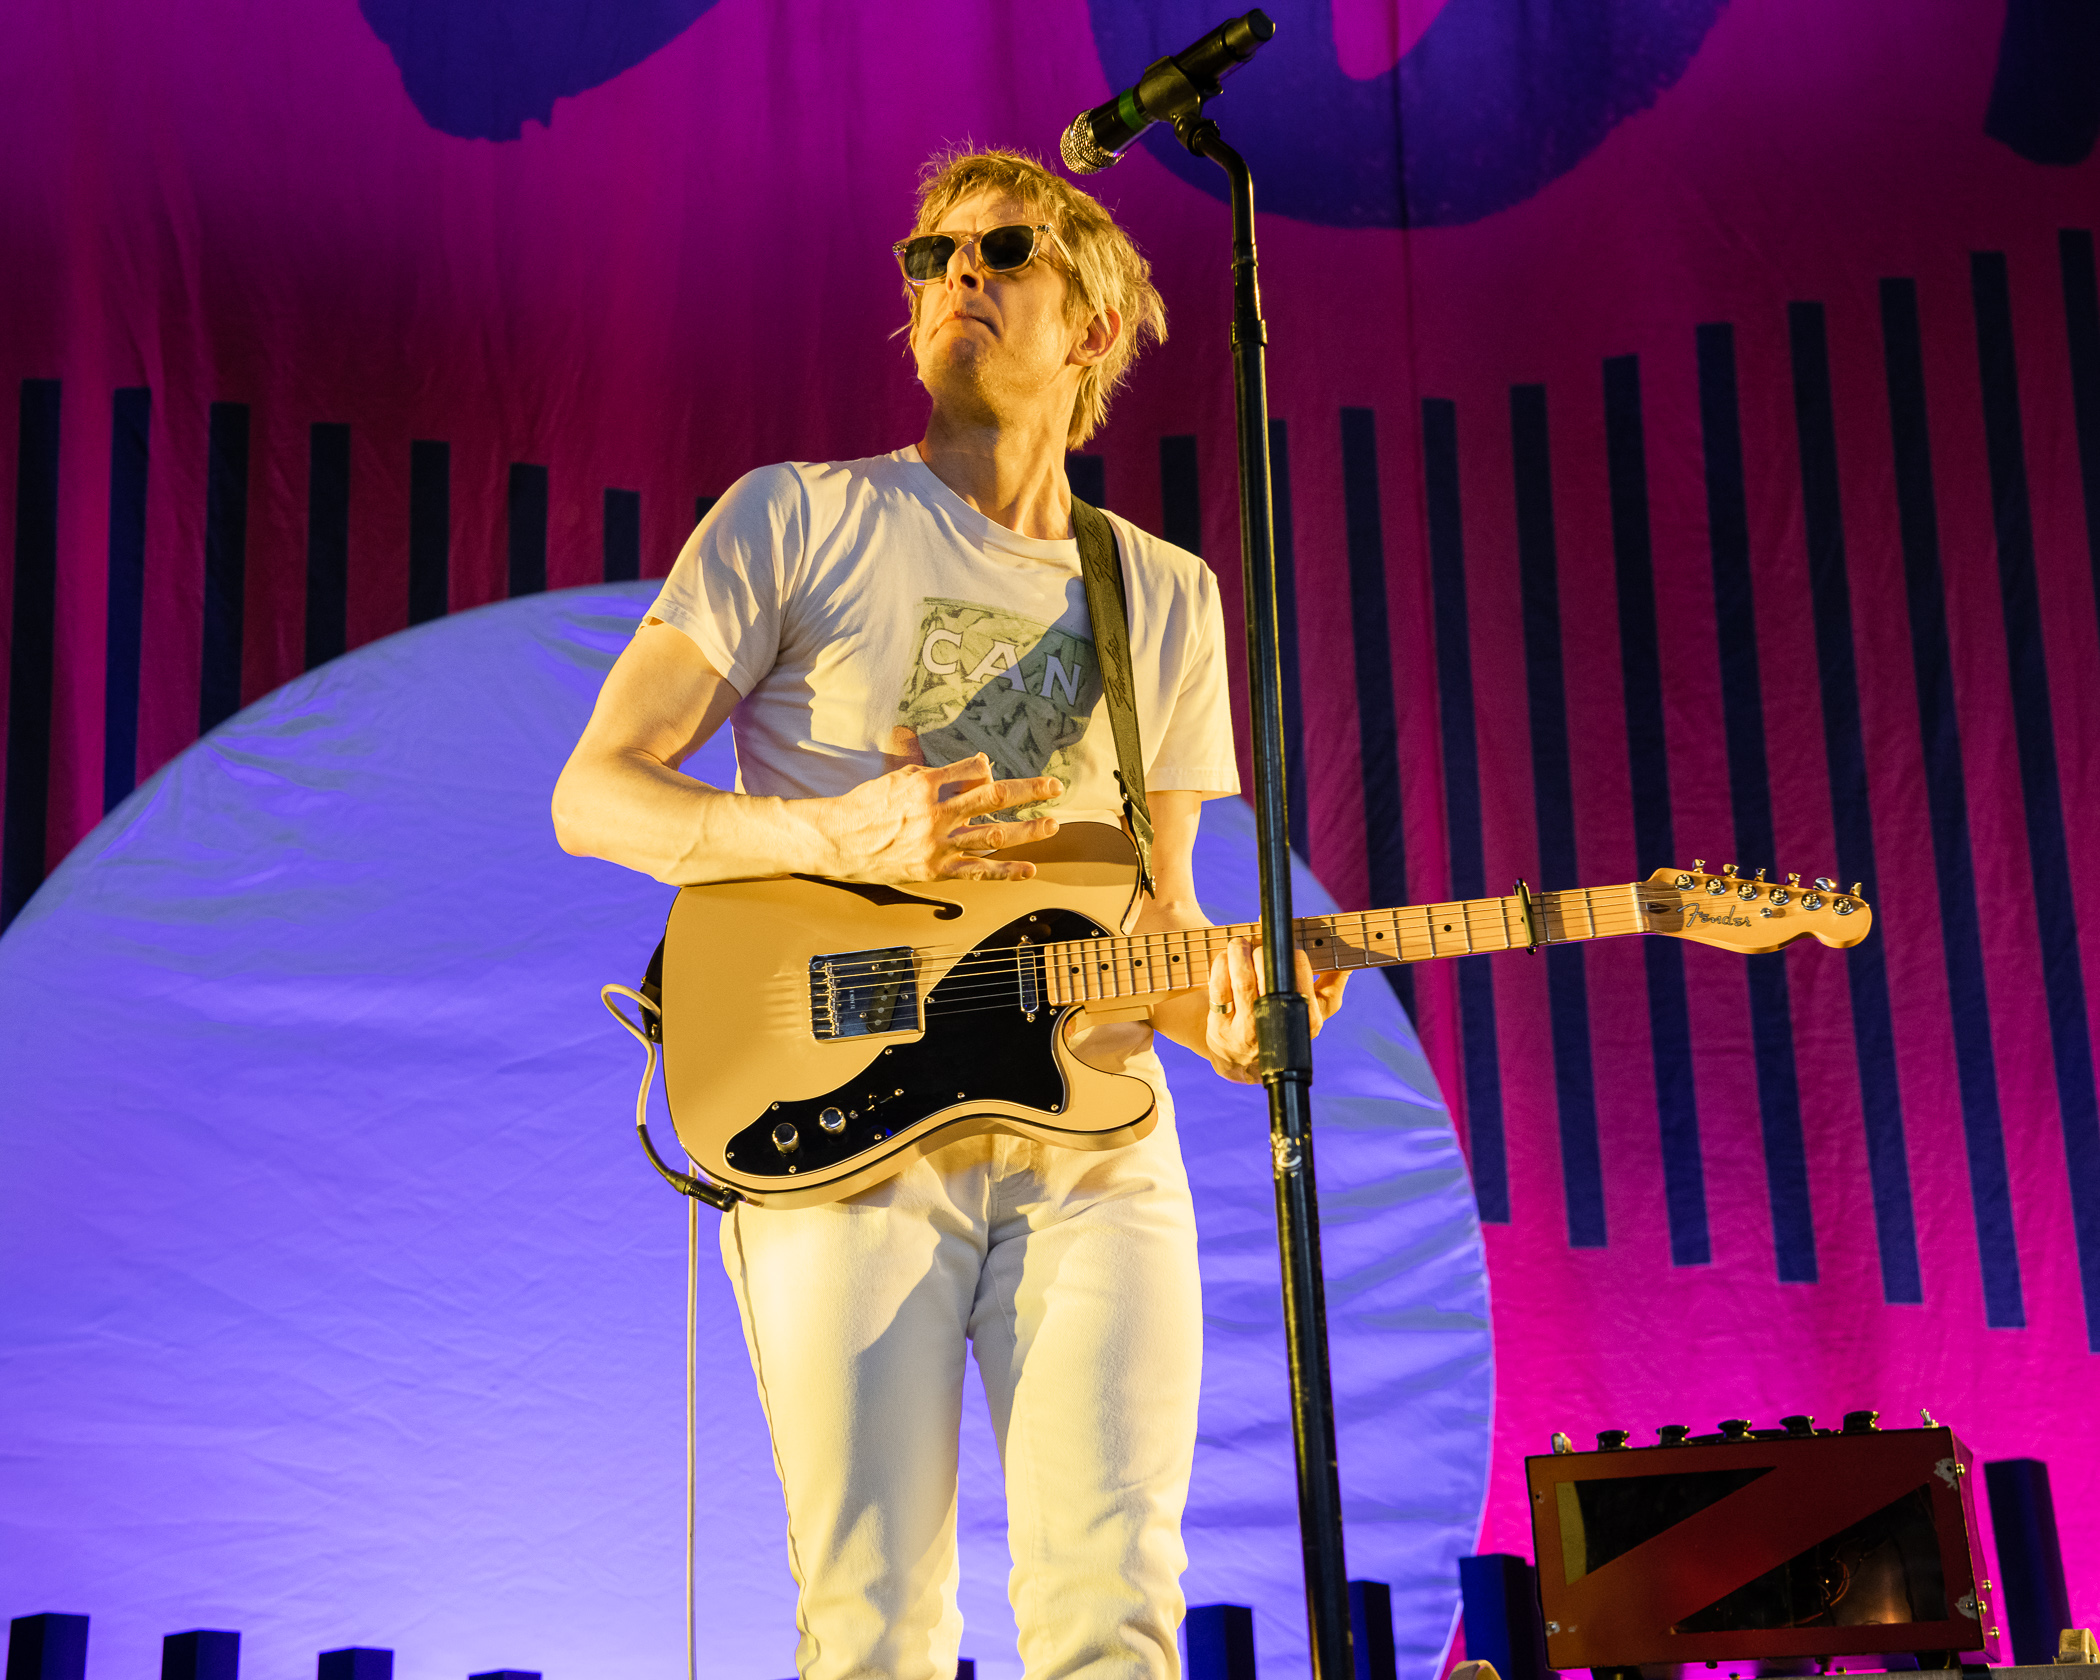 Spoon Performs at Merriweather Post Pavilion